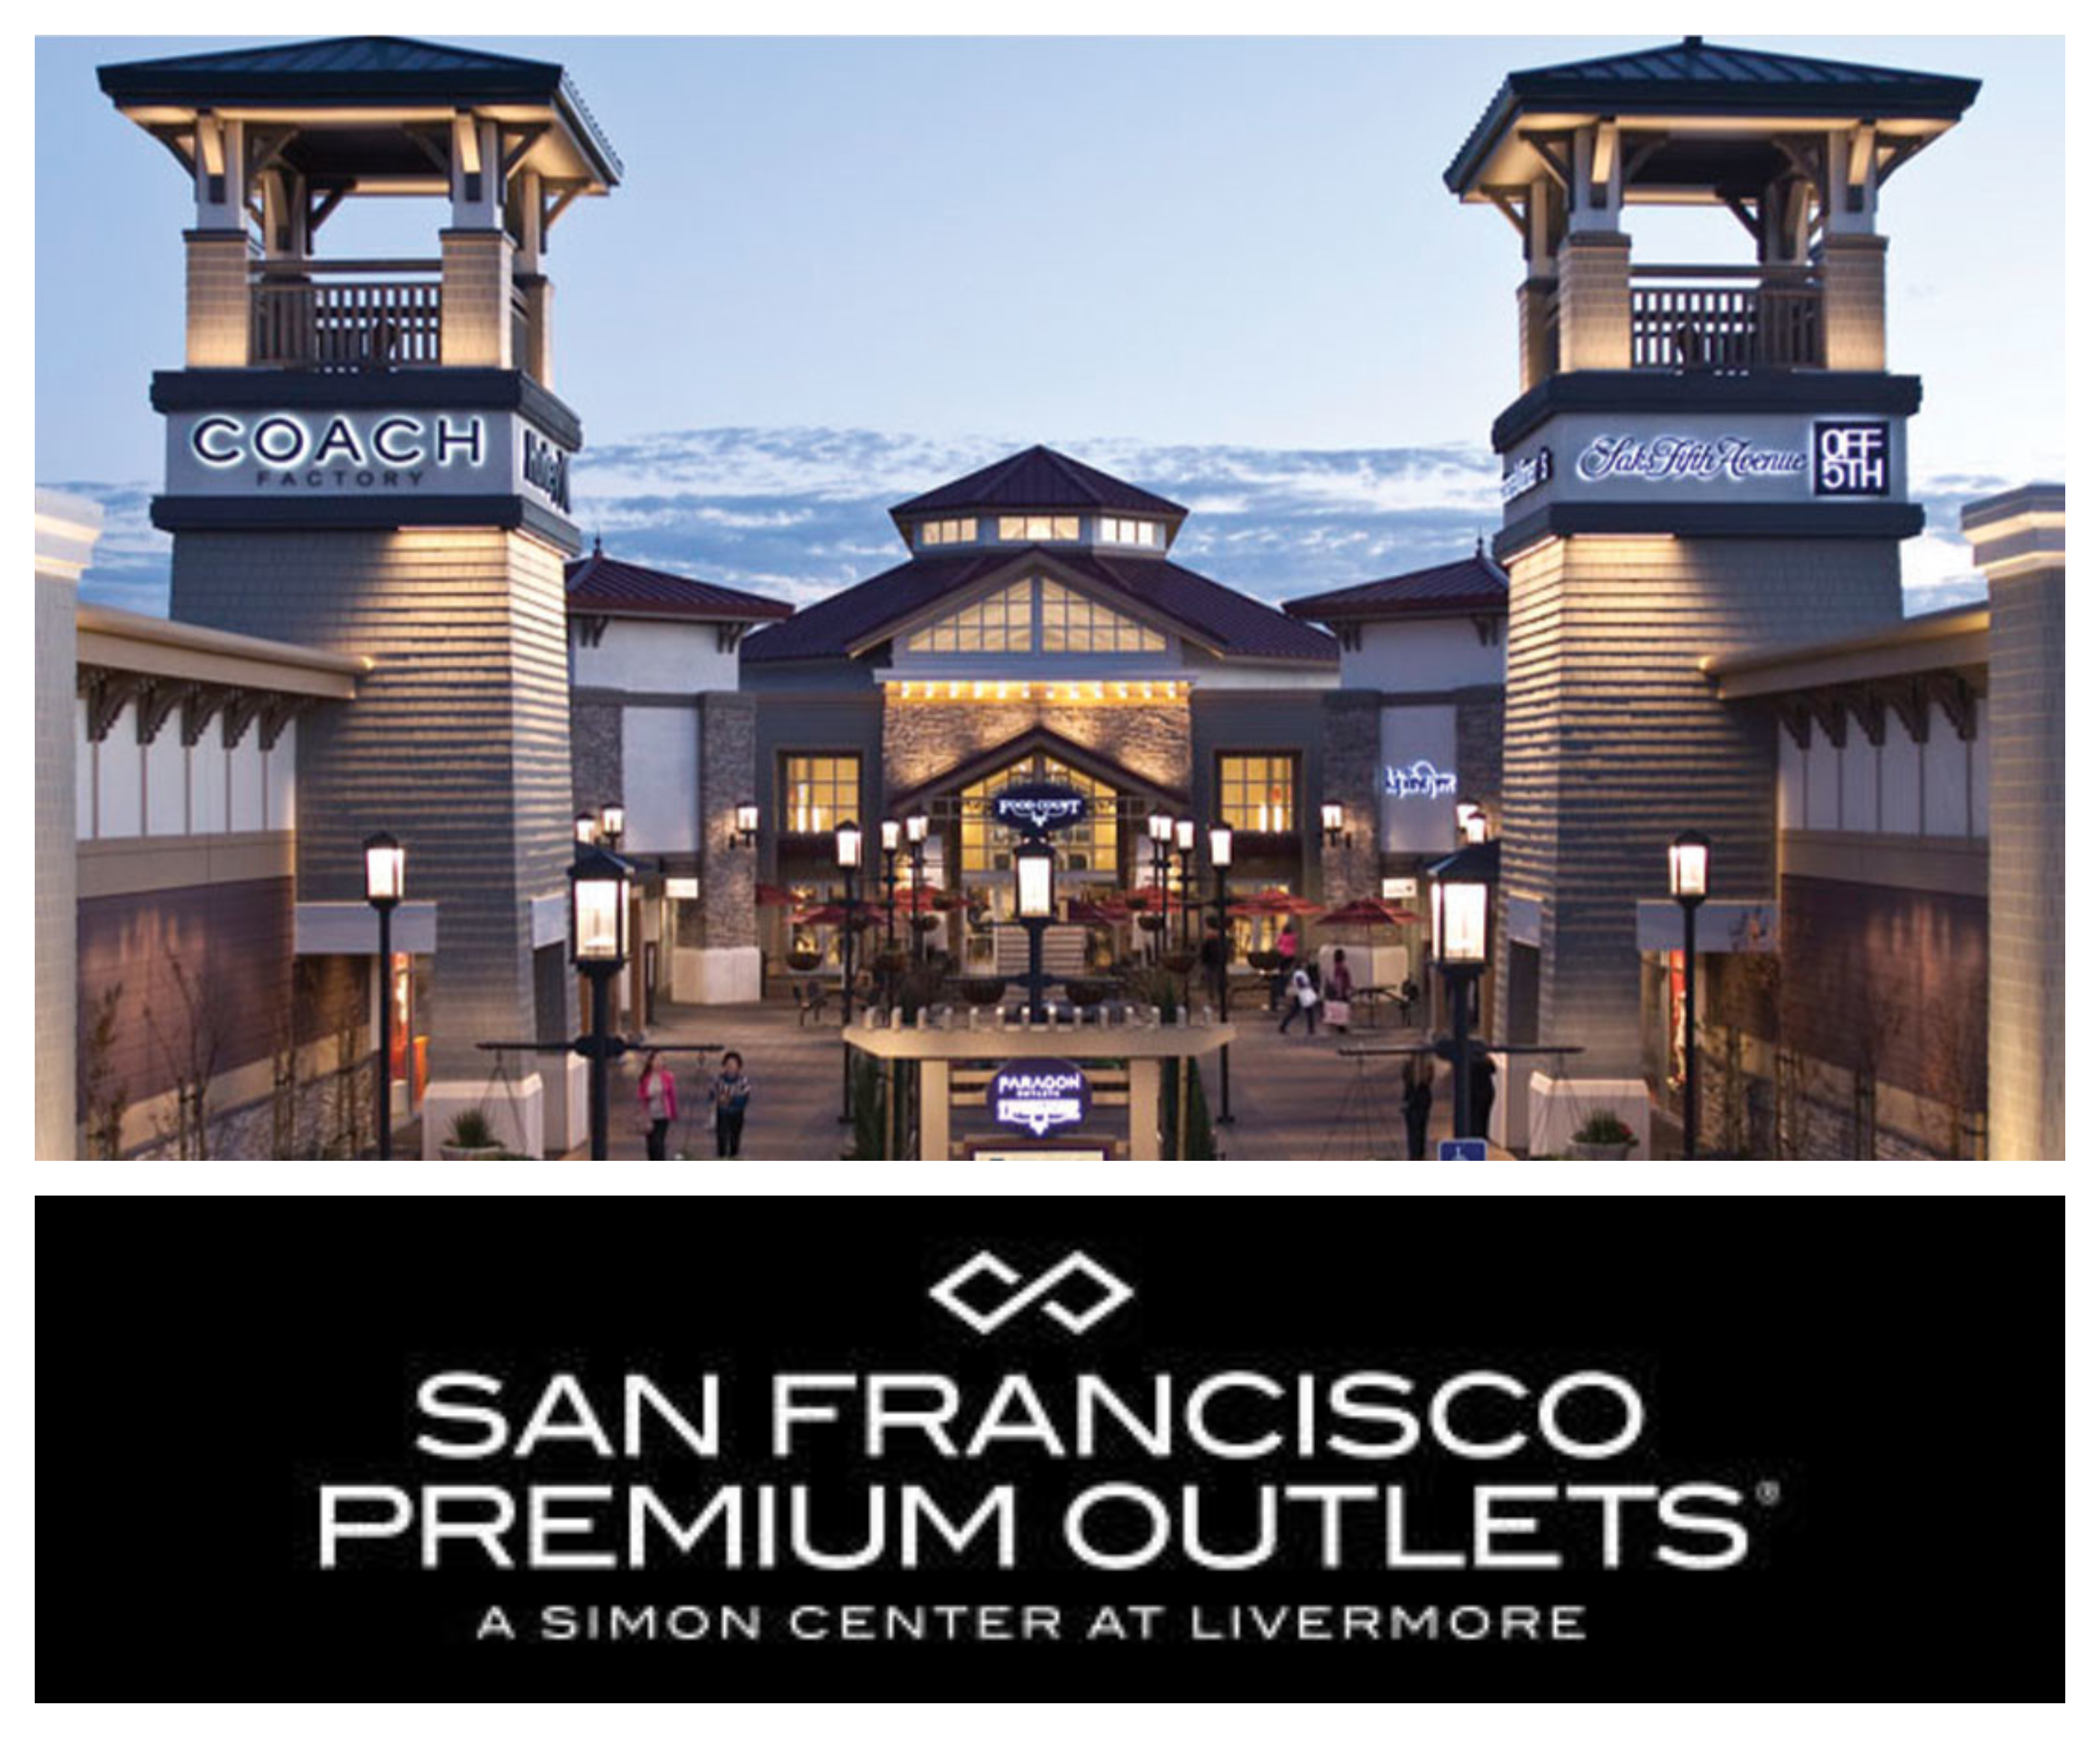 SF Premium Outlets